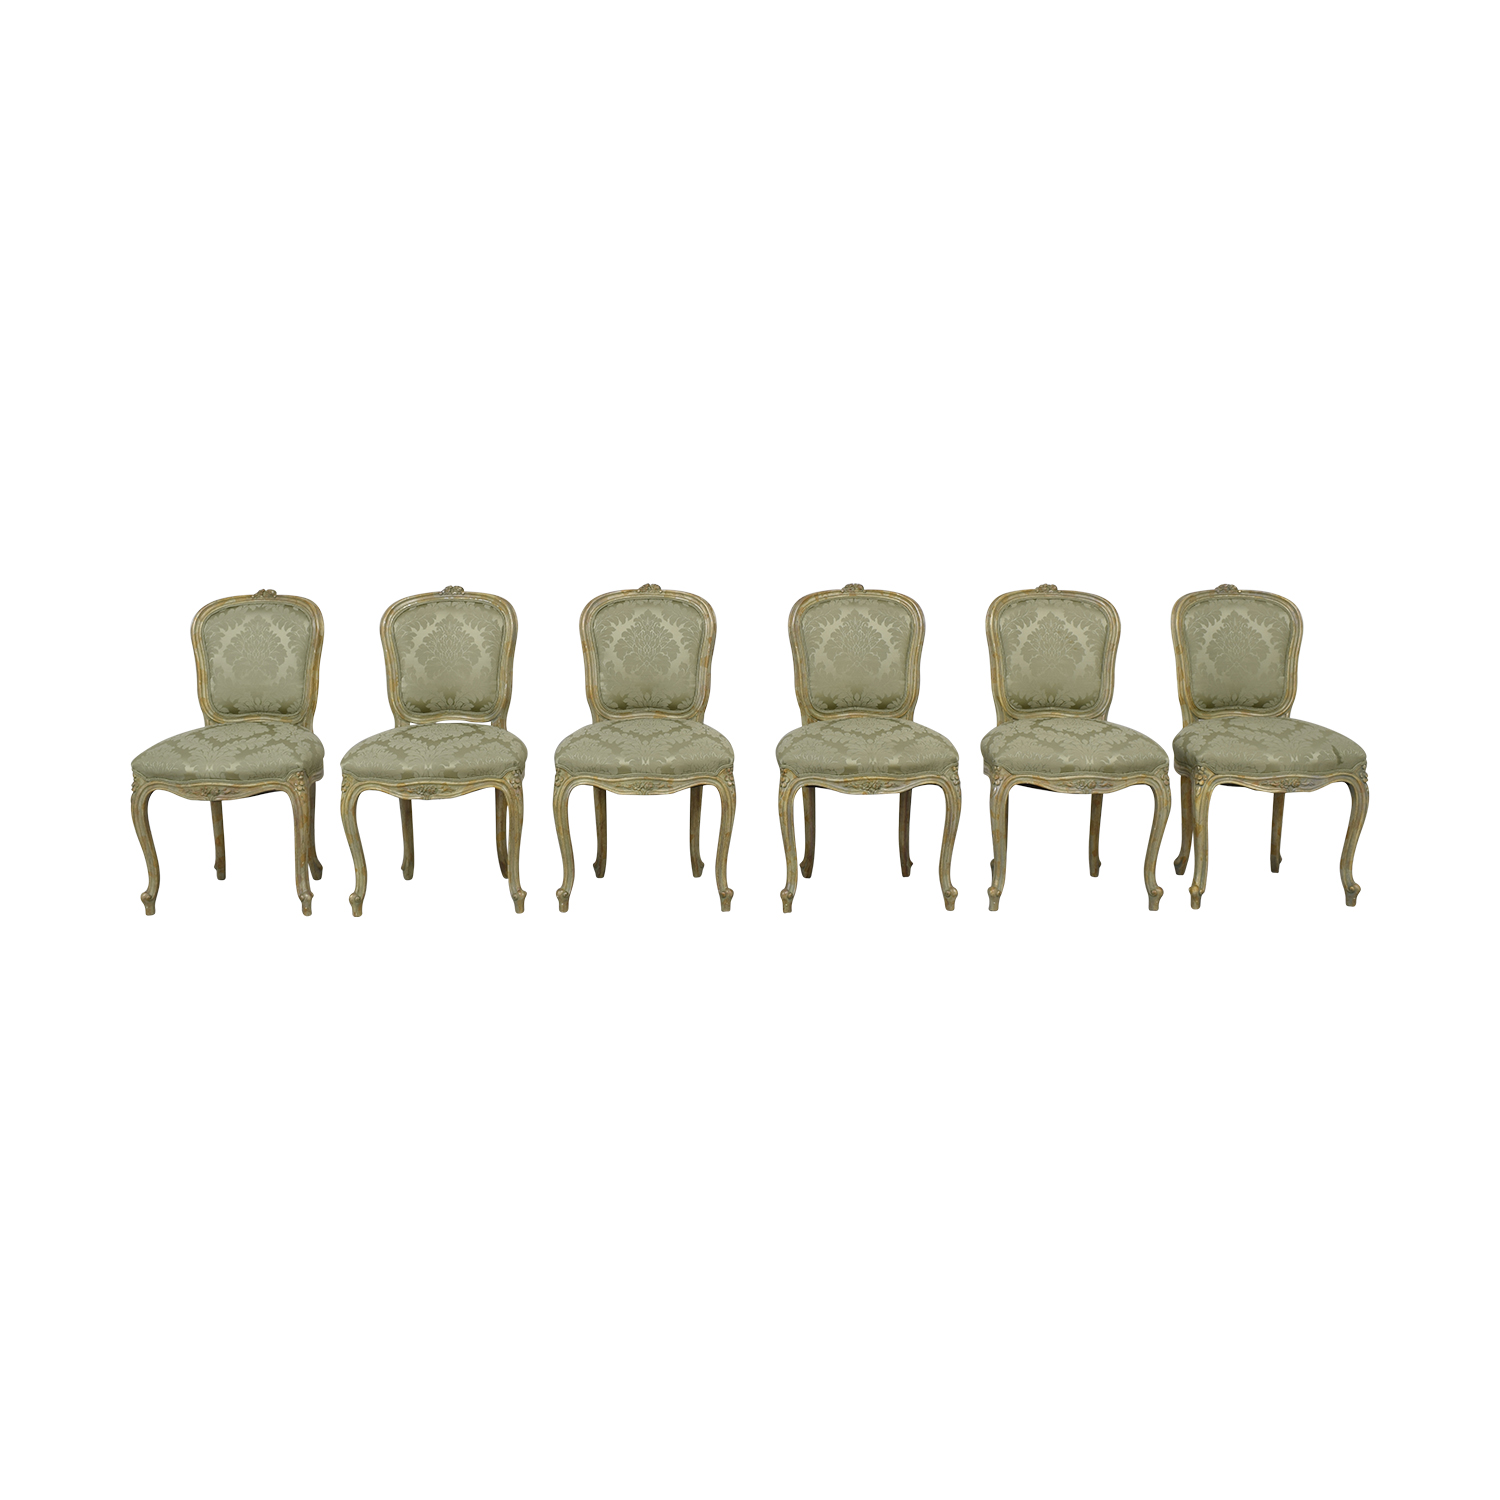 Swell 90 Off Devon Shops Devon Shop French Celery Damask Upholstered Dining Chairs Chairs Ibusinesslaw Wood Chair Design Ideas Ibusinesslaworg